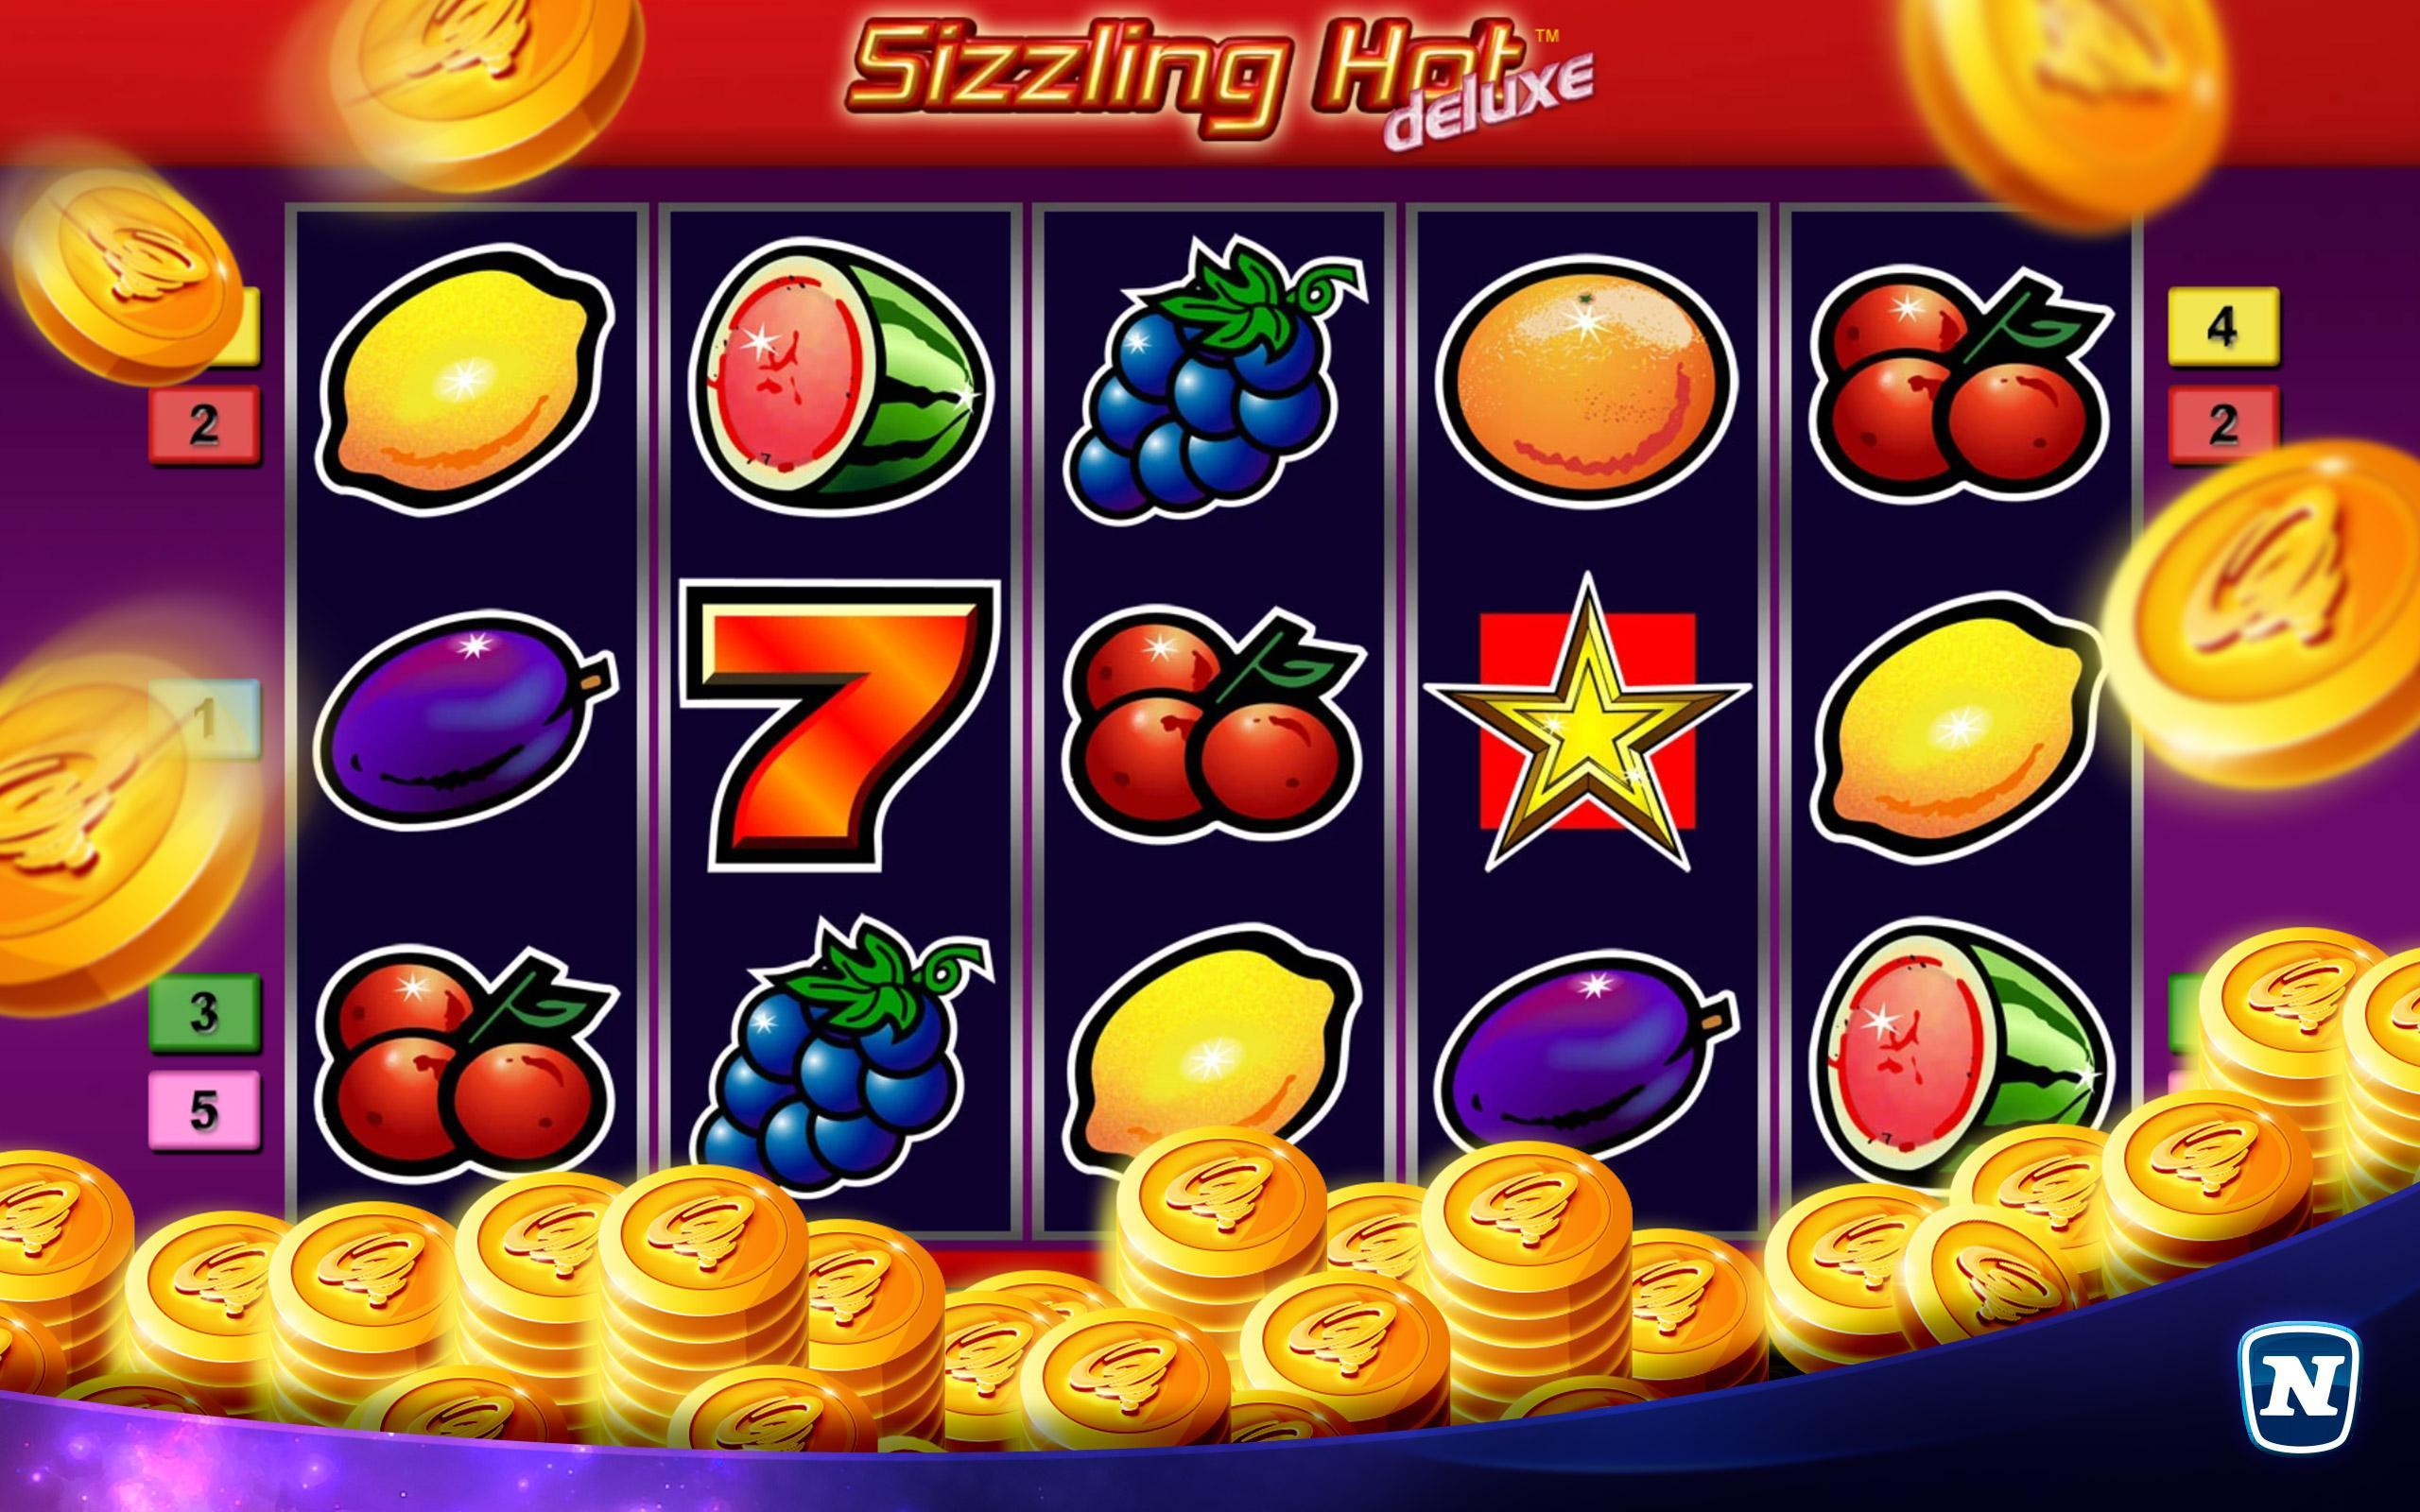 Sizzling Hot Spiel Download